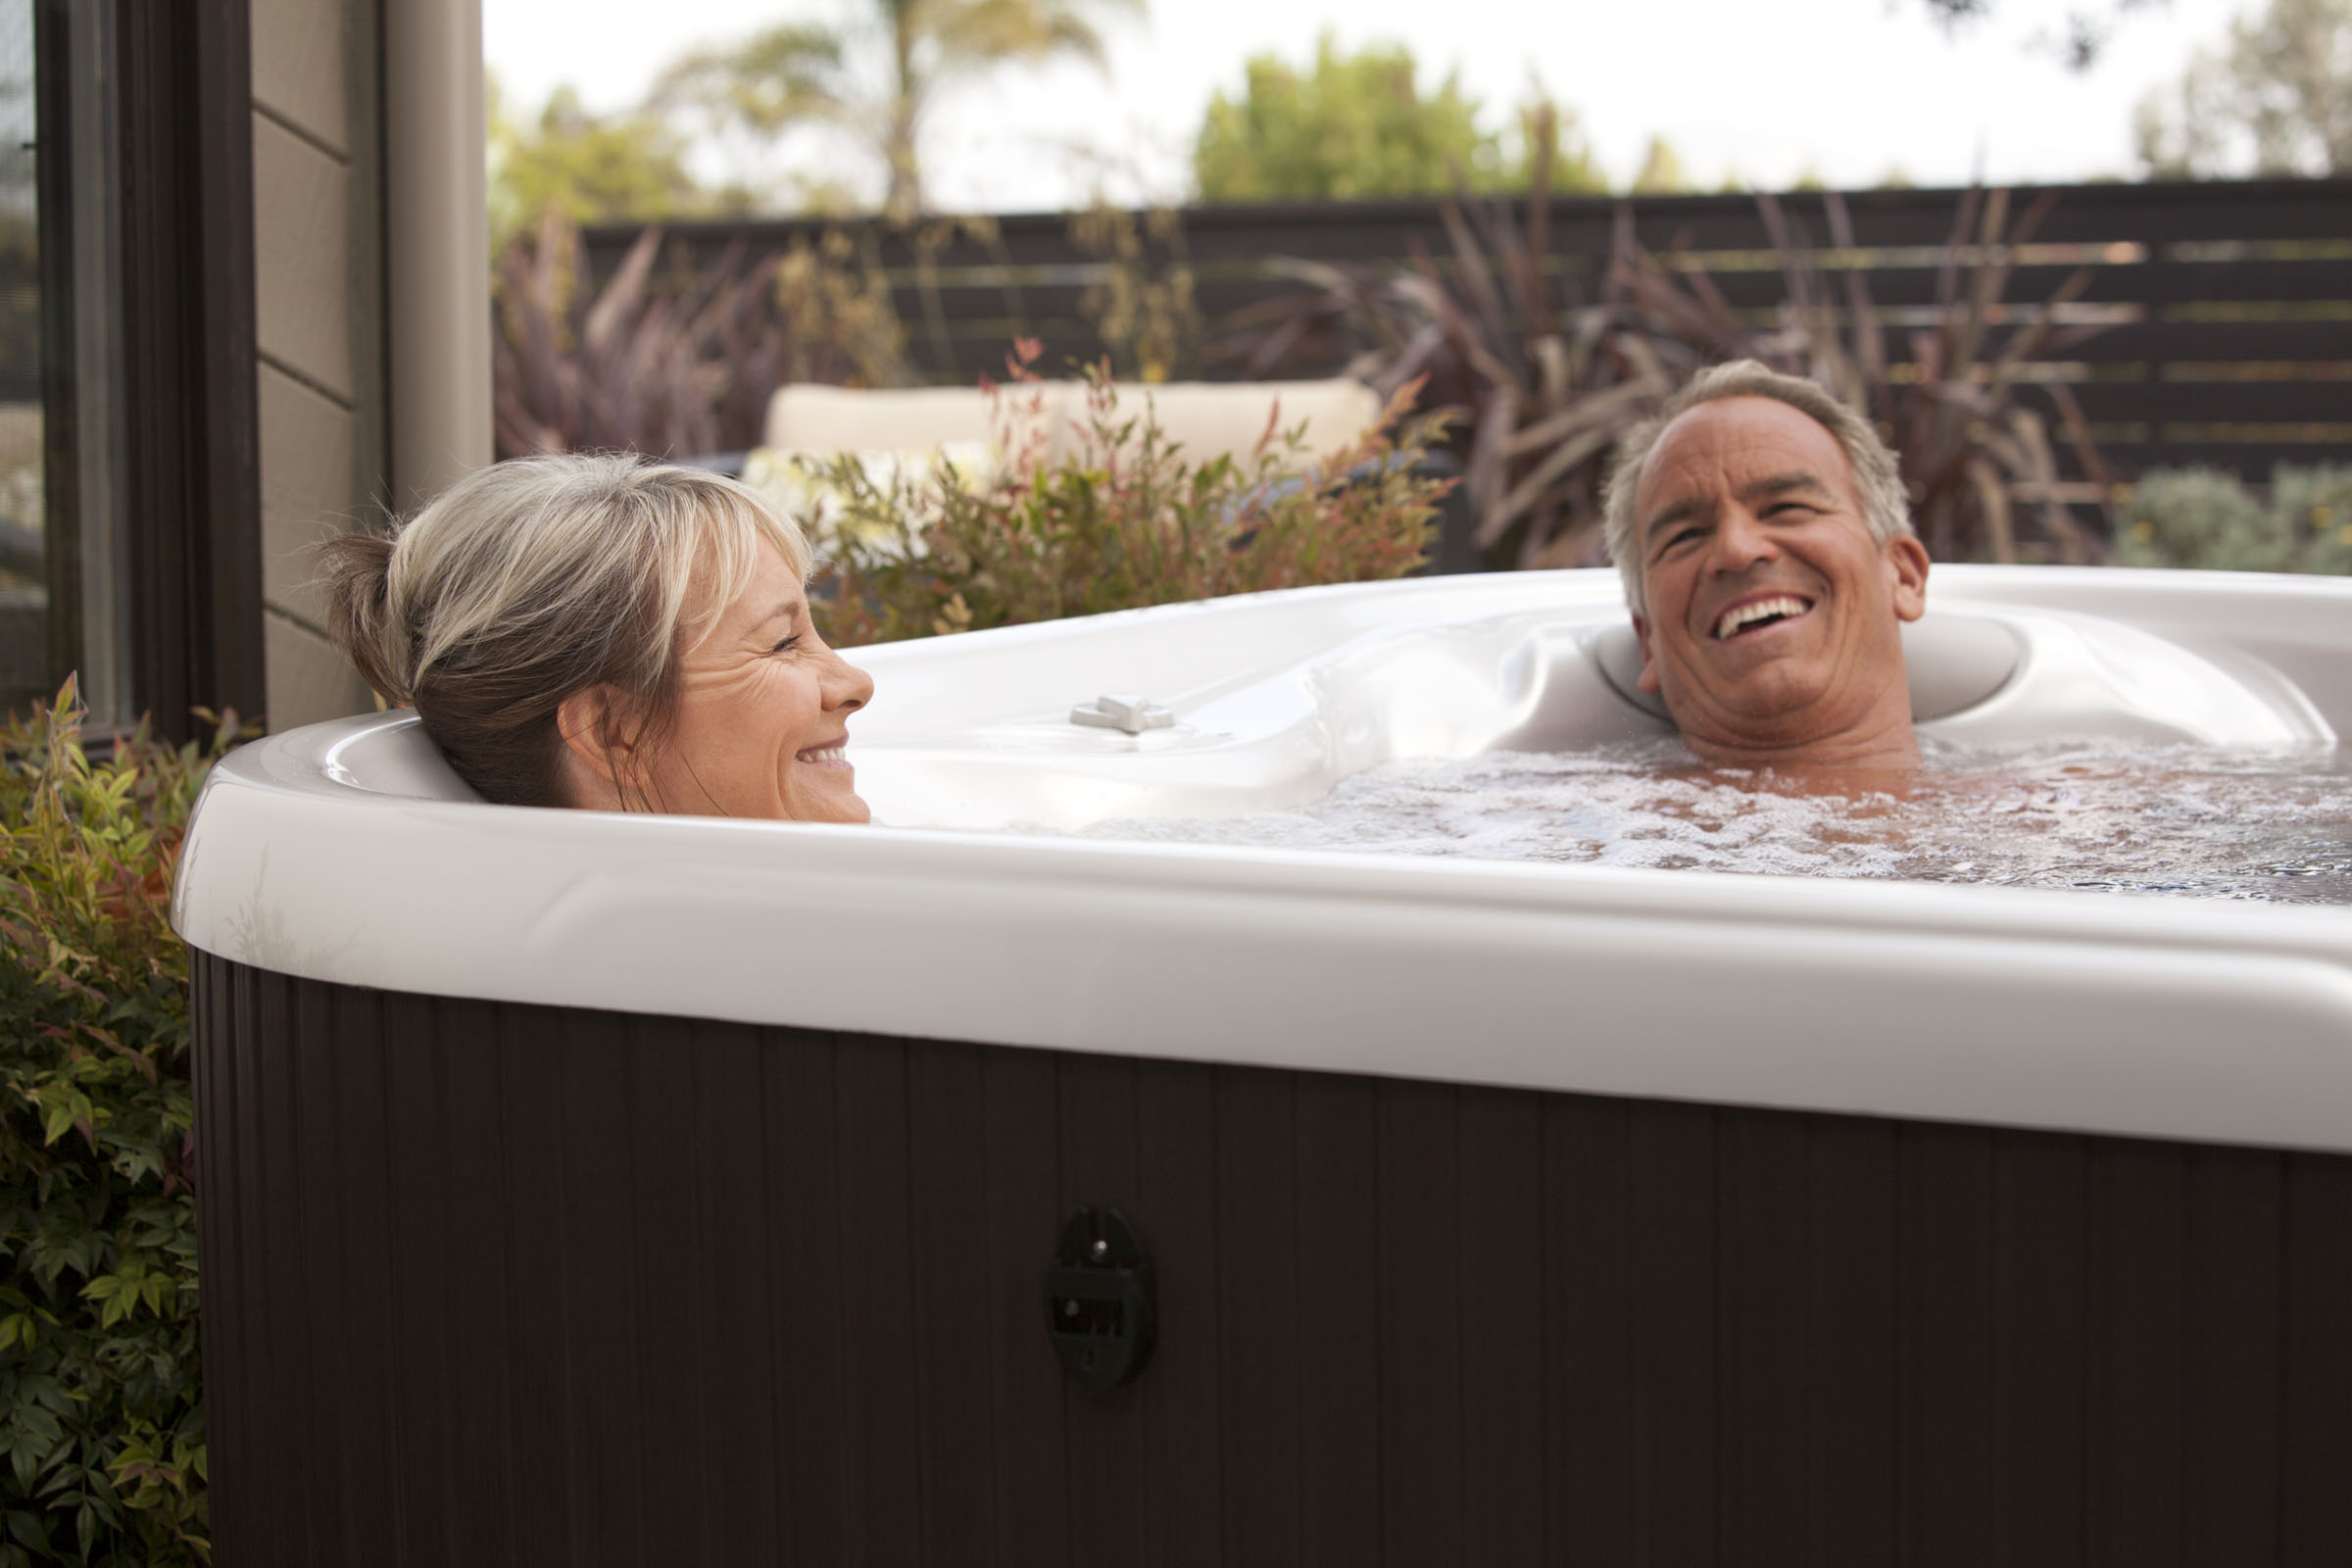 Guidelines to find the ideal length of time to hot tub